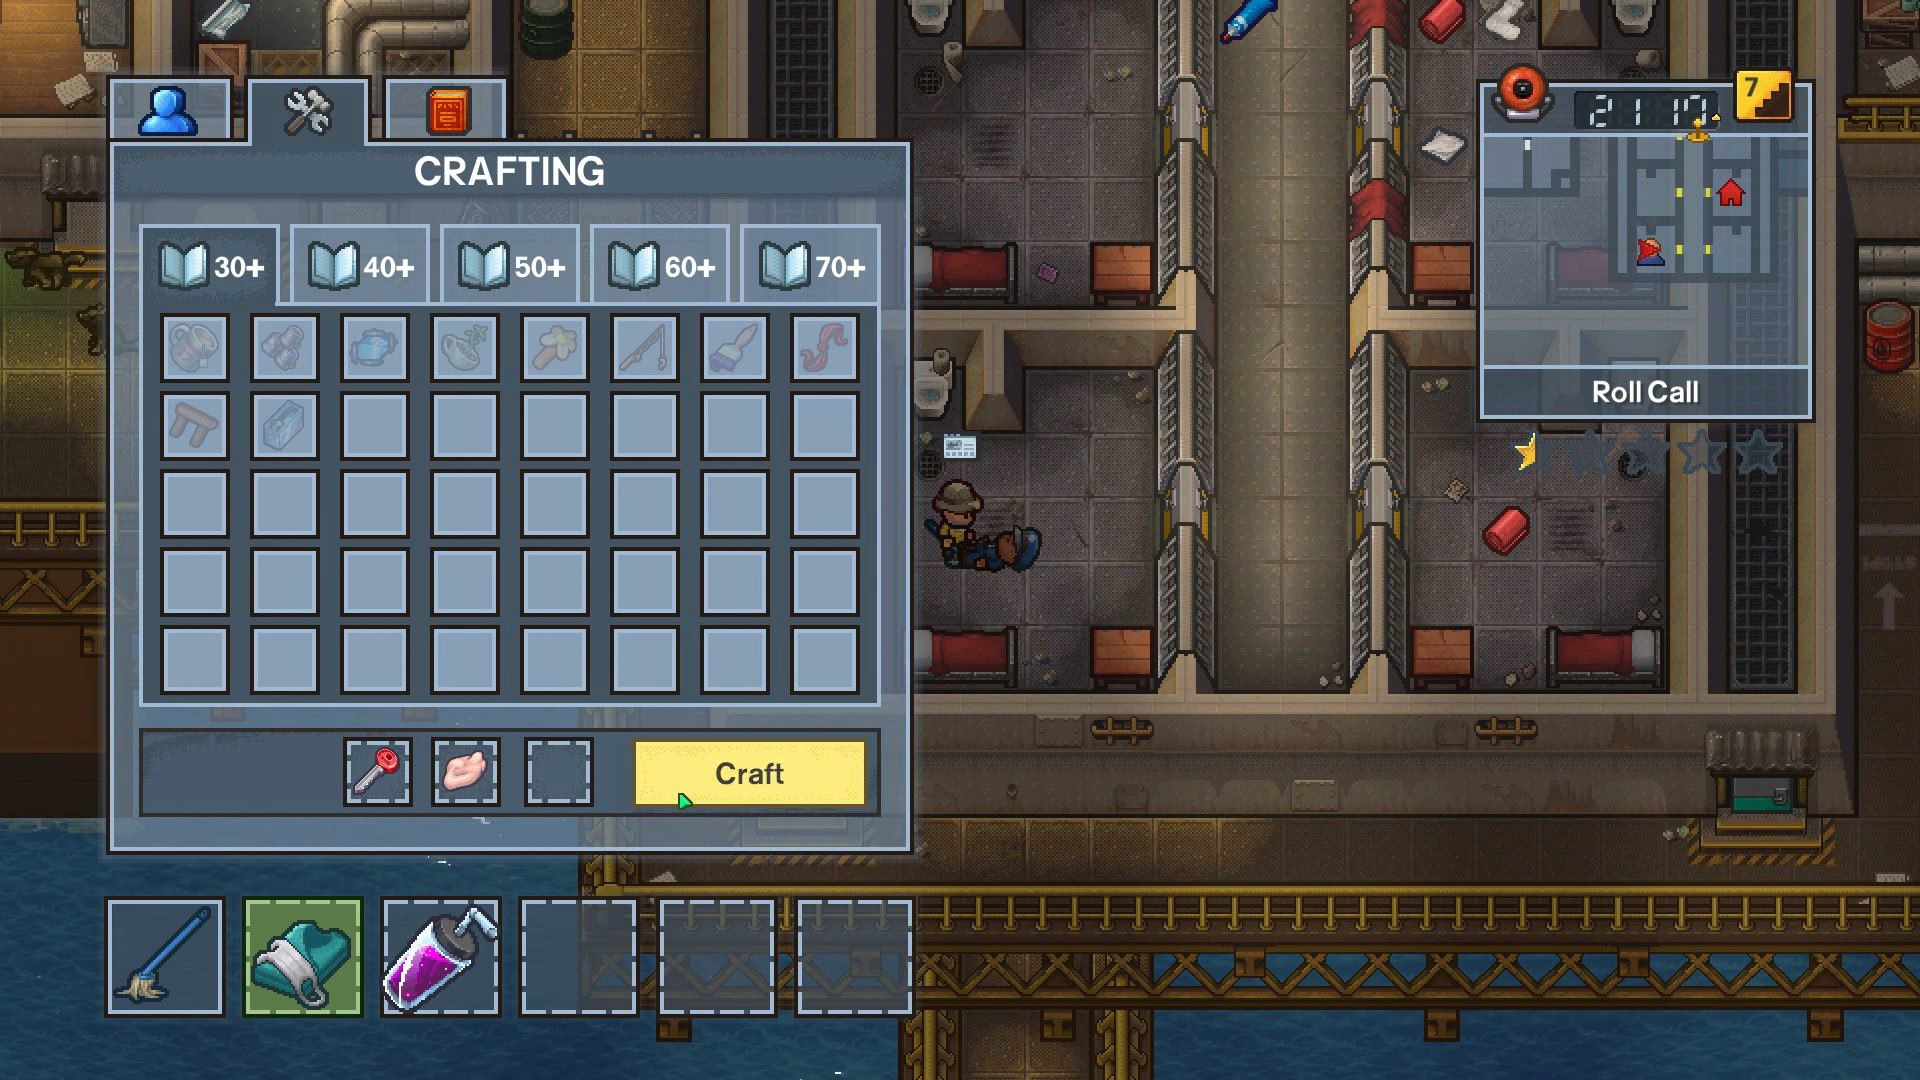 The Escapists 2 Key Guide - How to Get a Plastic Key, Copy Guard